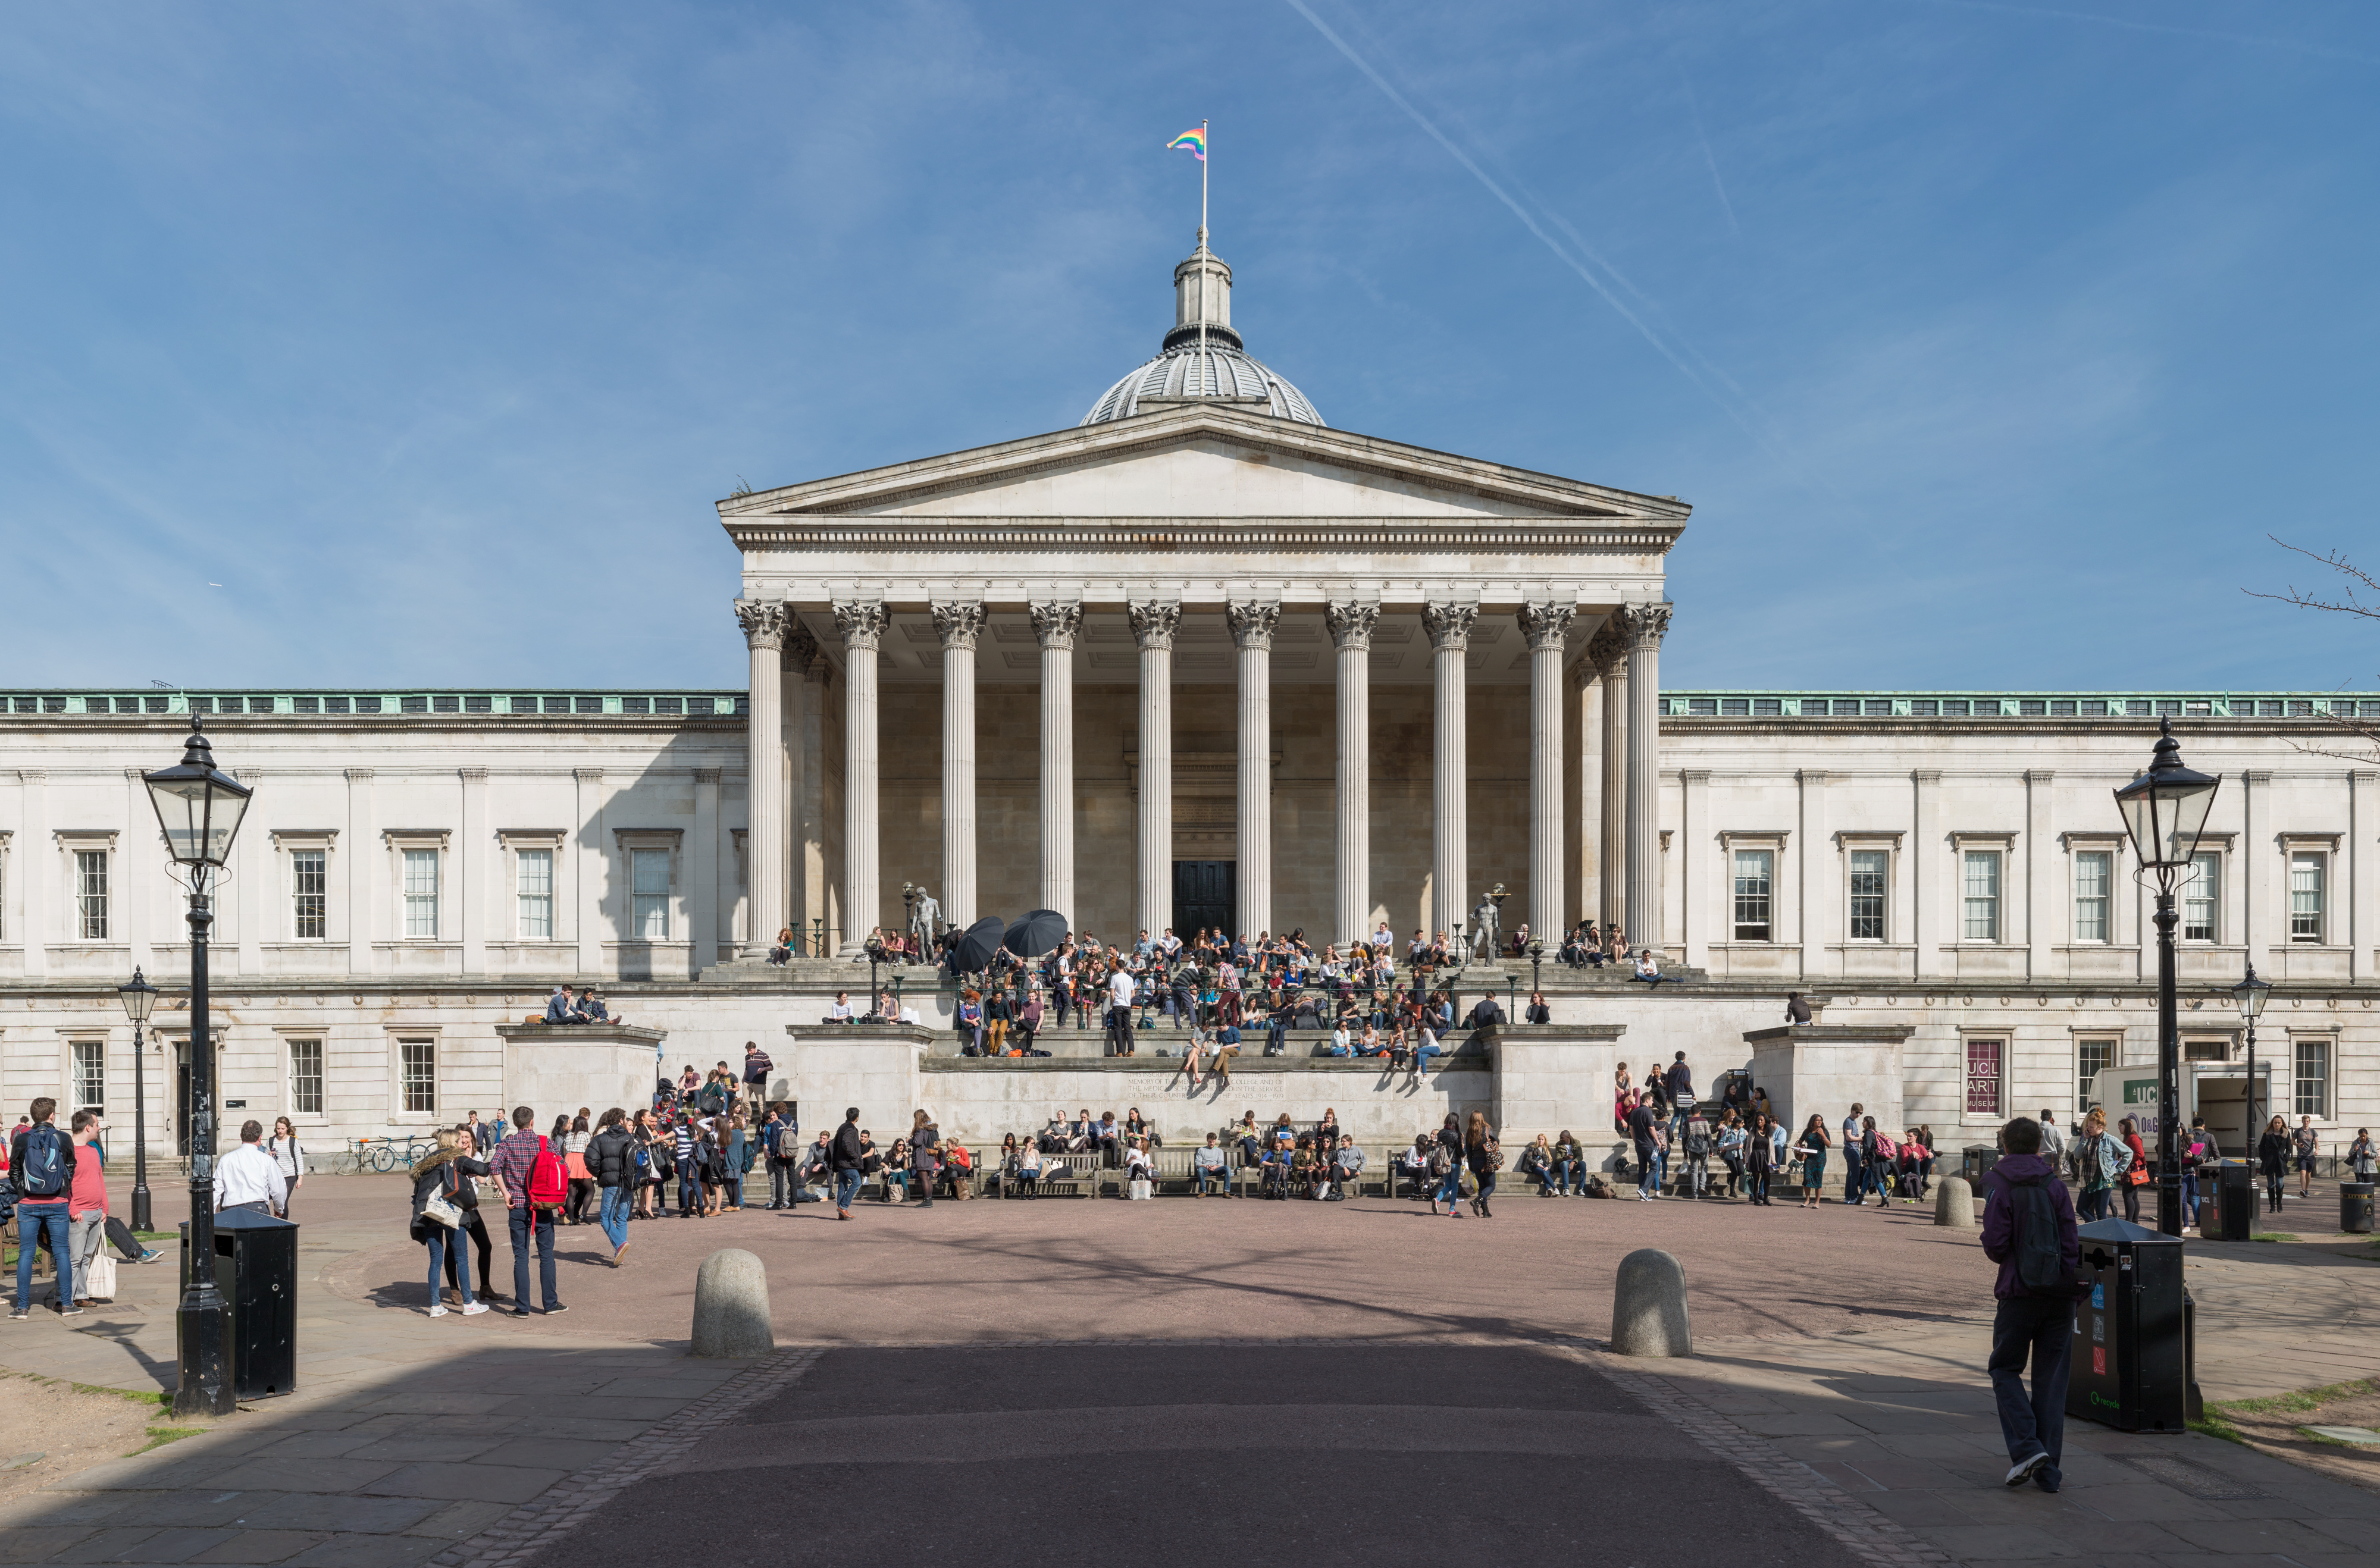 Wilkins_Building_1%2C_UCL%2C_London_-_Diliff.jpg?profile=RESIZE_710x